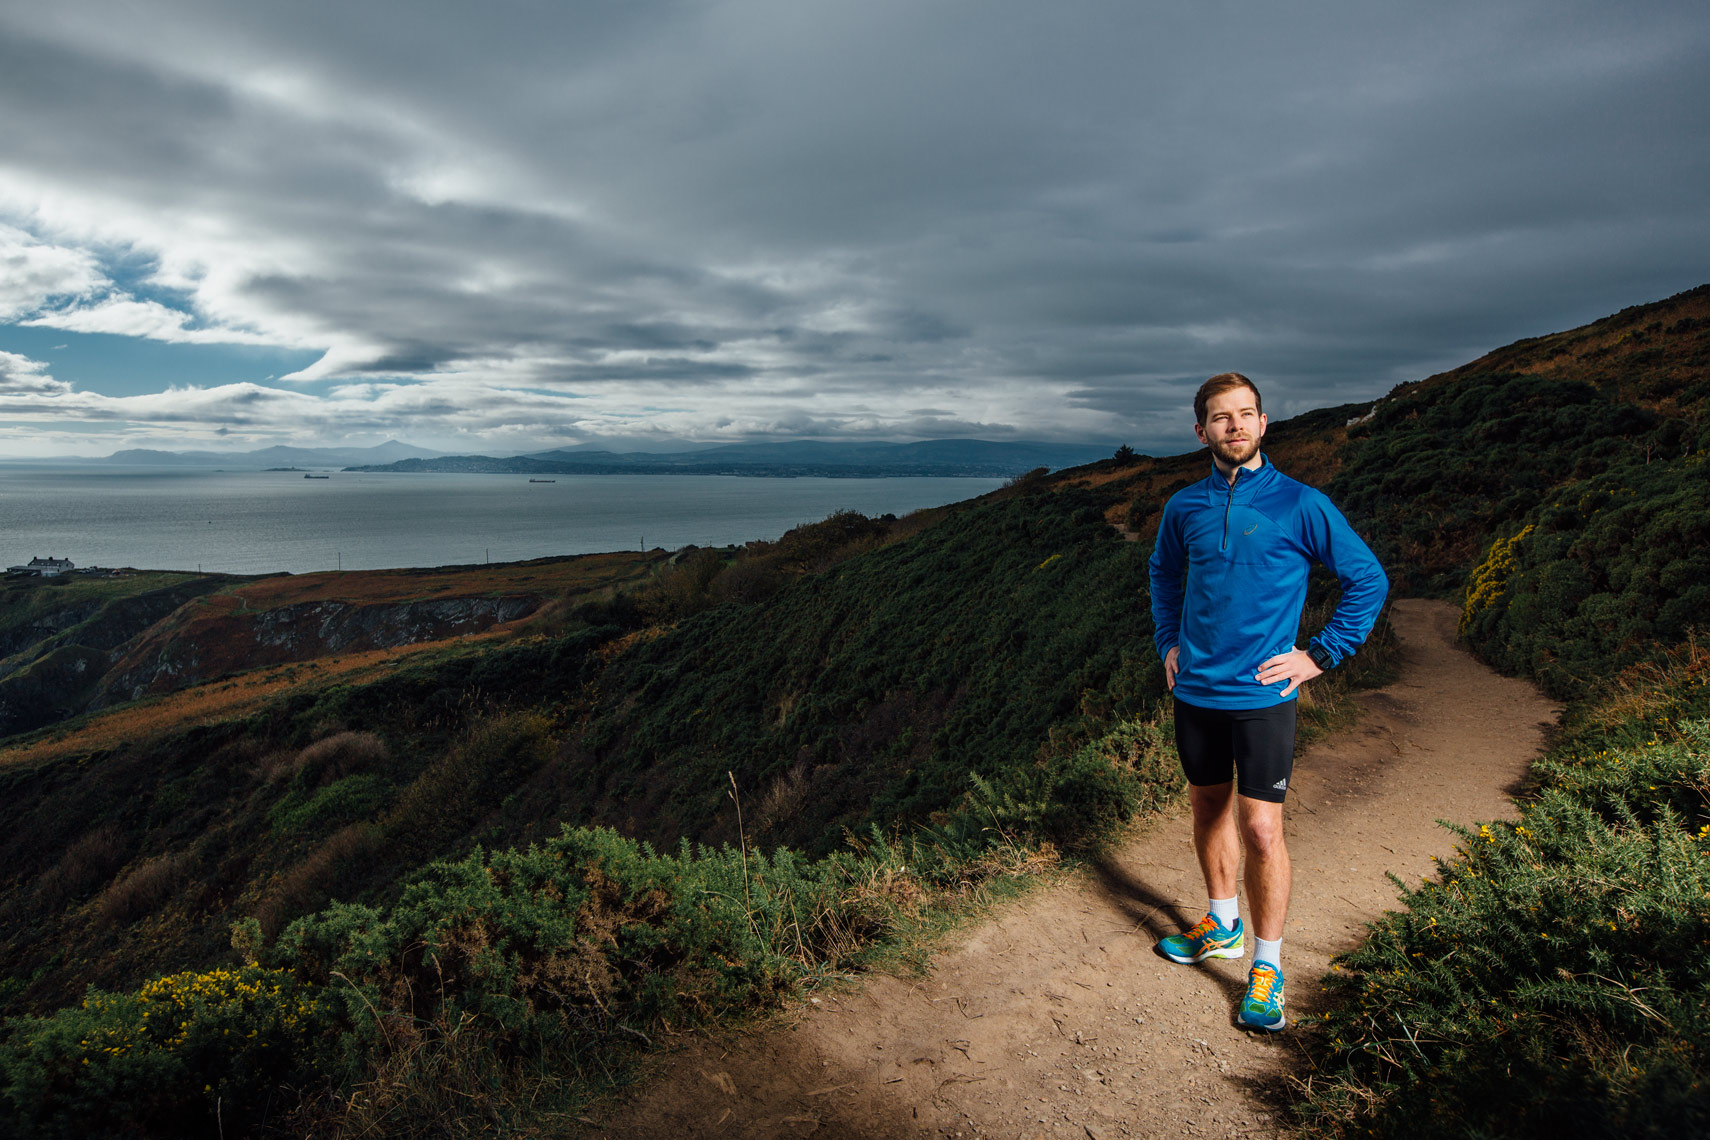 dramatic portrait of runner on cliff walk wearing blue top